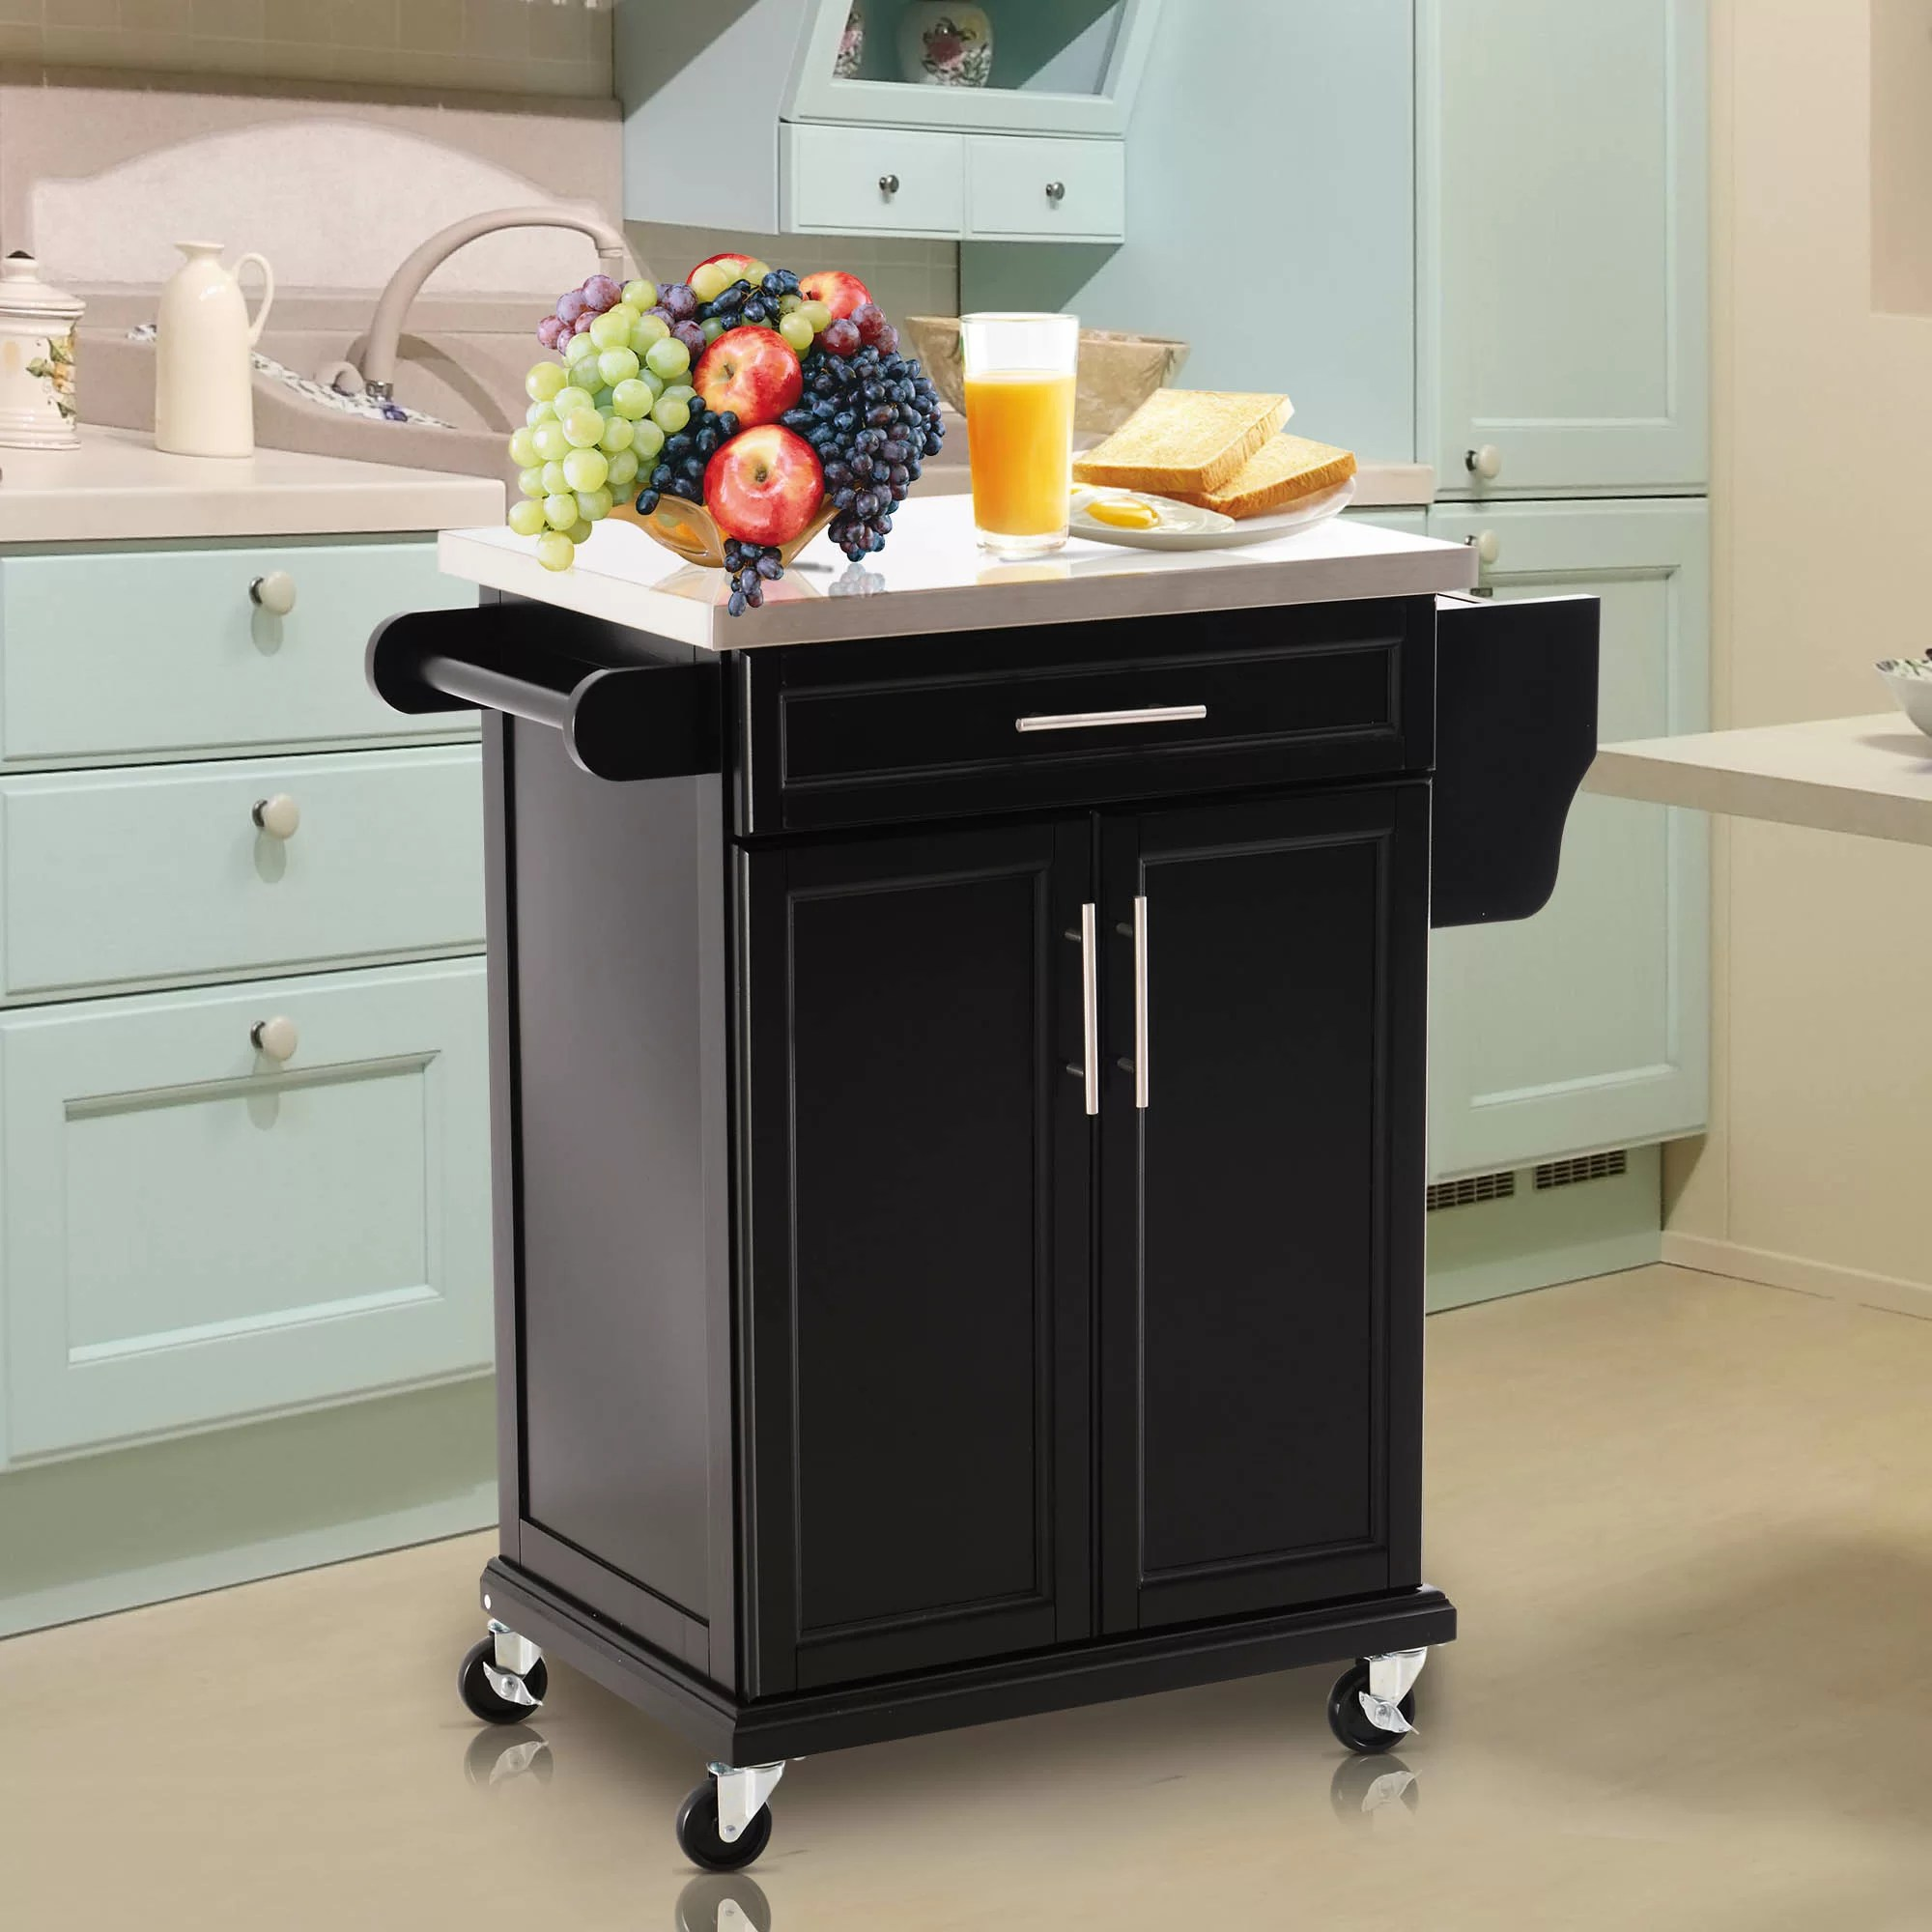 Ebern Designs Taunton Rolling Kitchen Island With Stainless Steel Top Reviews Wayfair Ca - Garden Furniture Clearance Taunton